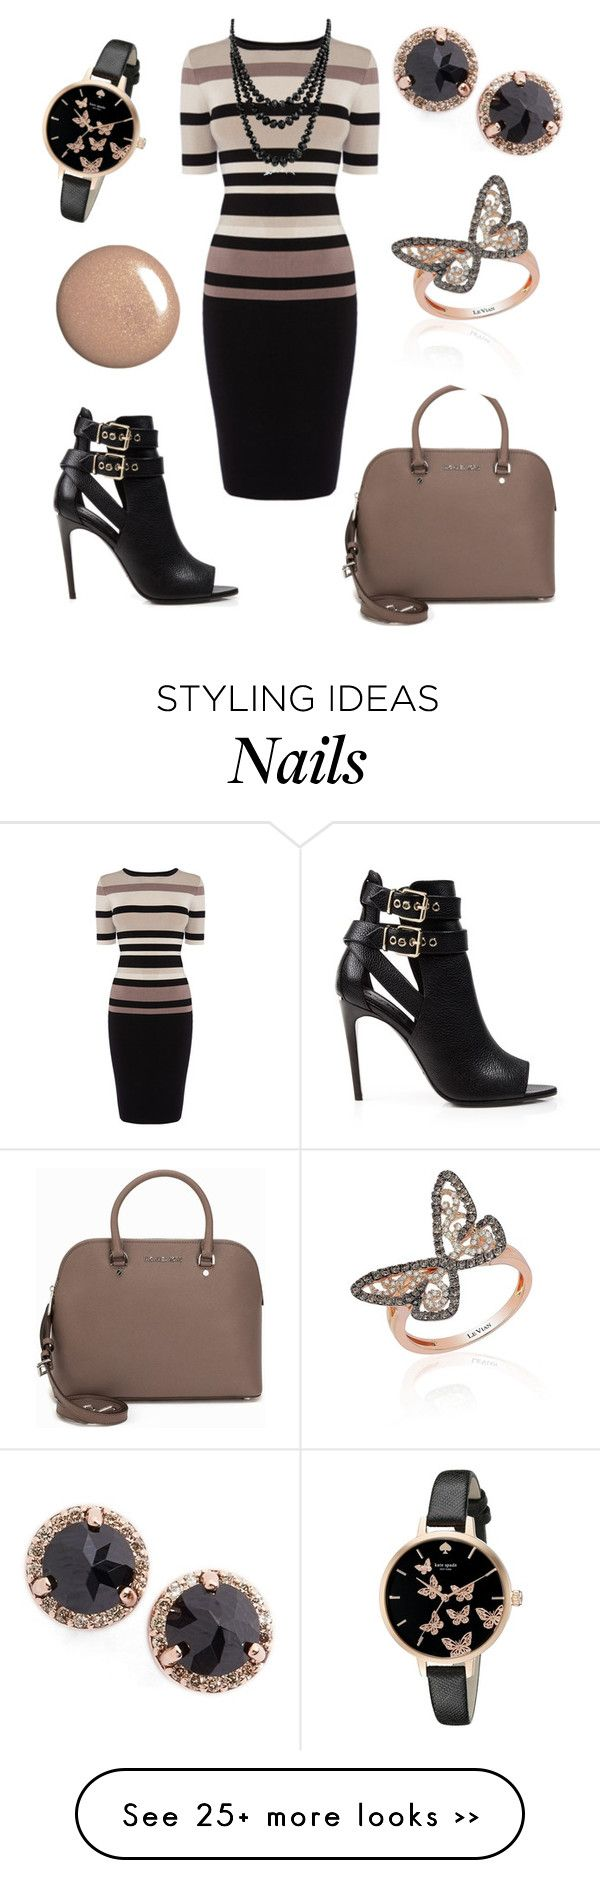 """""""Sally"""" by office-girl on Polyvore featuring Burberry, MICHAEL Michael Kors, Kate Spade, Anna Sheffield, LeVian and Bling Jewelry"""